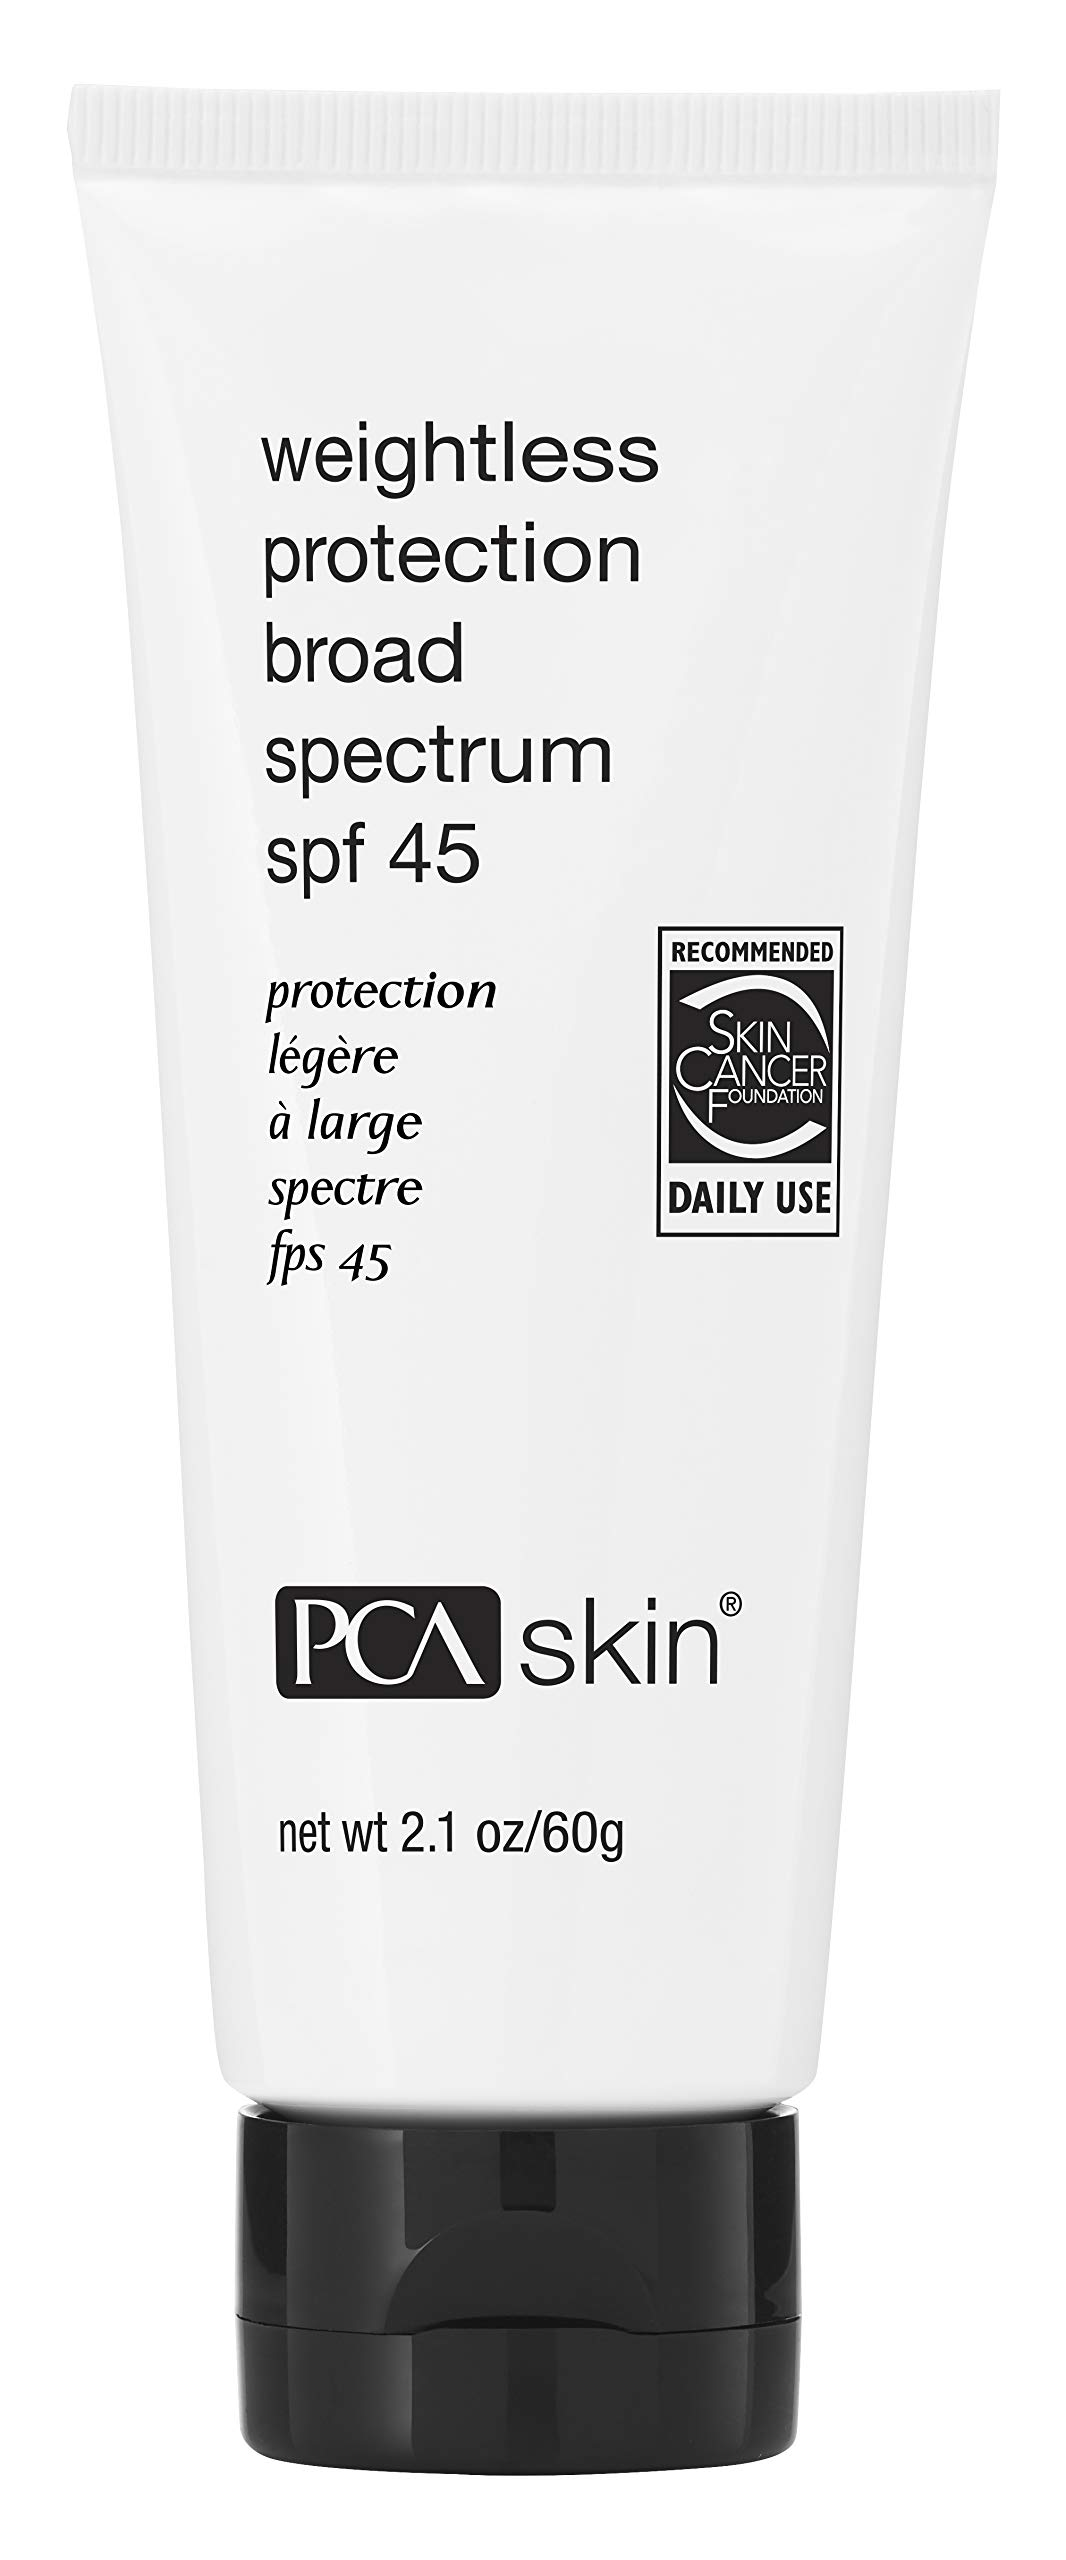 PCA SKIN Weightless Protection Broad Spectrum SPF 45, Ultra Lightweight Daily Facial Sunscreen, UVA/UVB Protection, 2.1 fluid ounce by PCA SKIN